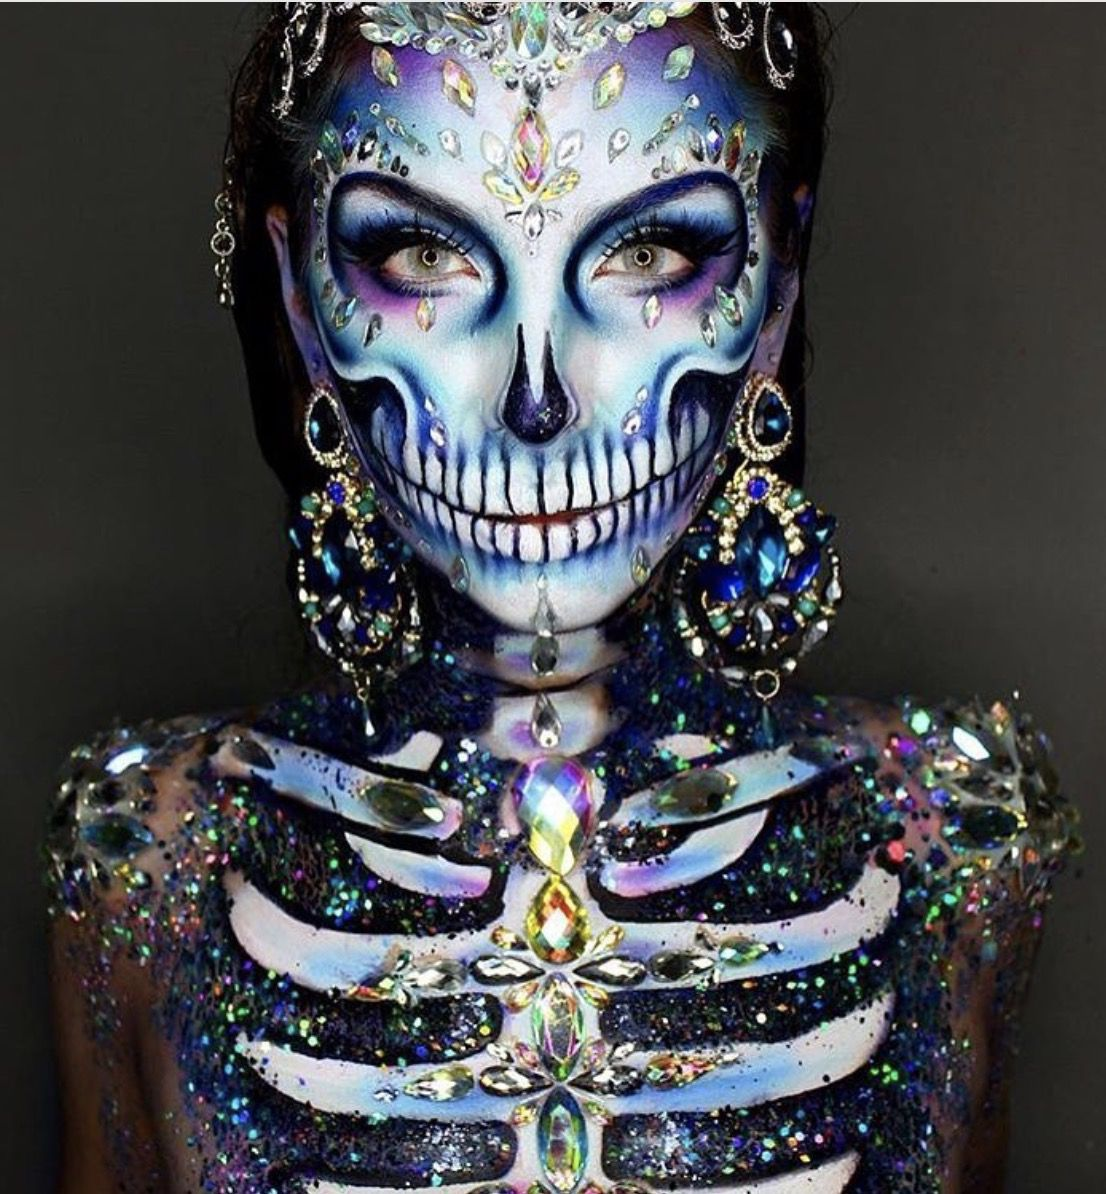 41 Most Jaw-Dropping Halloween Makeup Ideas That Are Still Pretty: Pretty Skull Makeup / Click though to see more awe inspiring pretty Halloween makeup looks, gorgeous Halloween makeup and Halloween costumes. #halloweenmakeup #halloweenmakeuppretty #halloweencostumes #halloweenmakeupinspo #prettyskullmakeup #skullmakeup